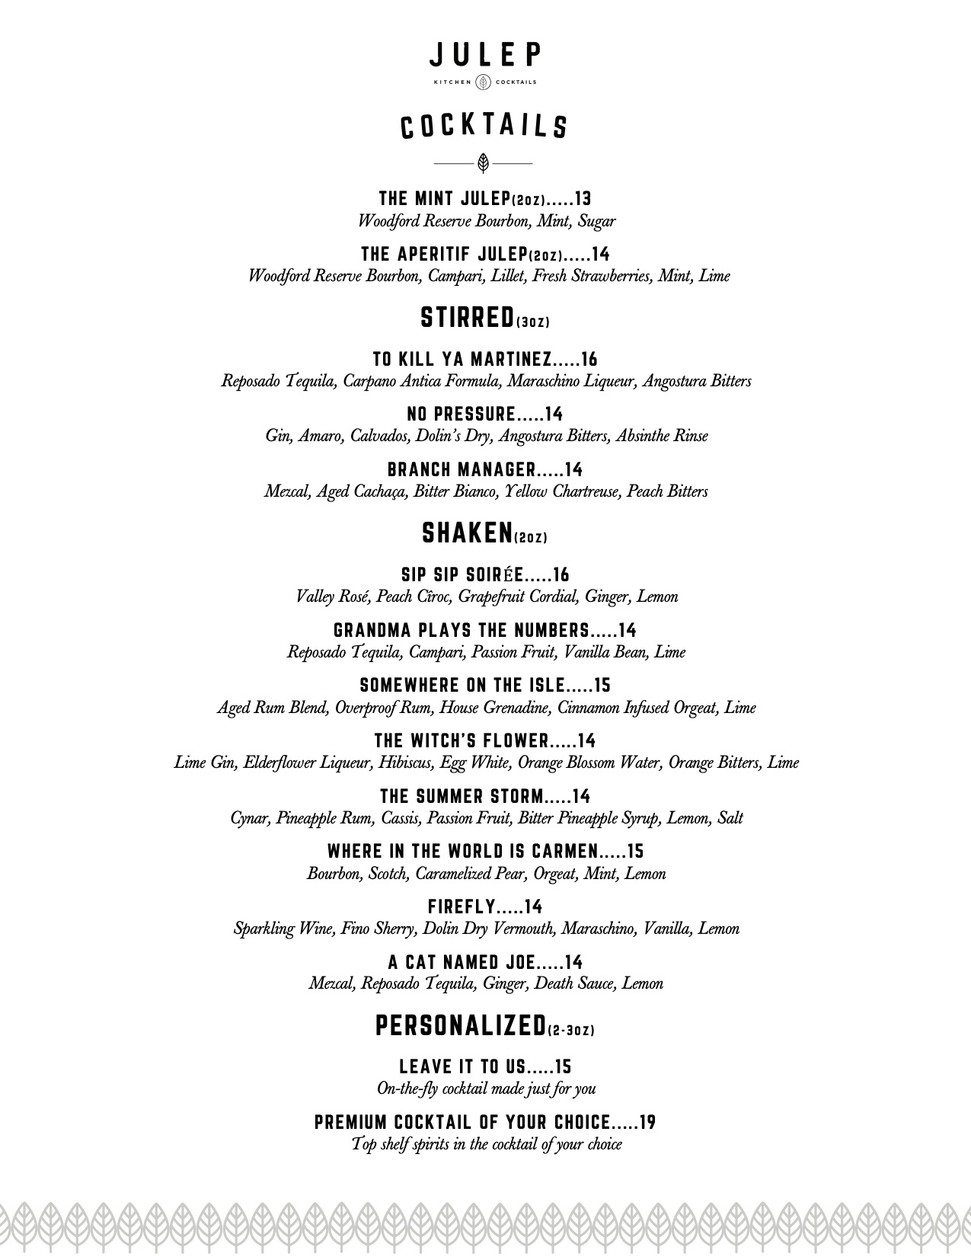 Julep cocktails updated prices.jpg